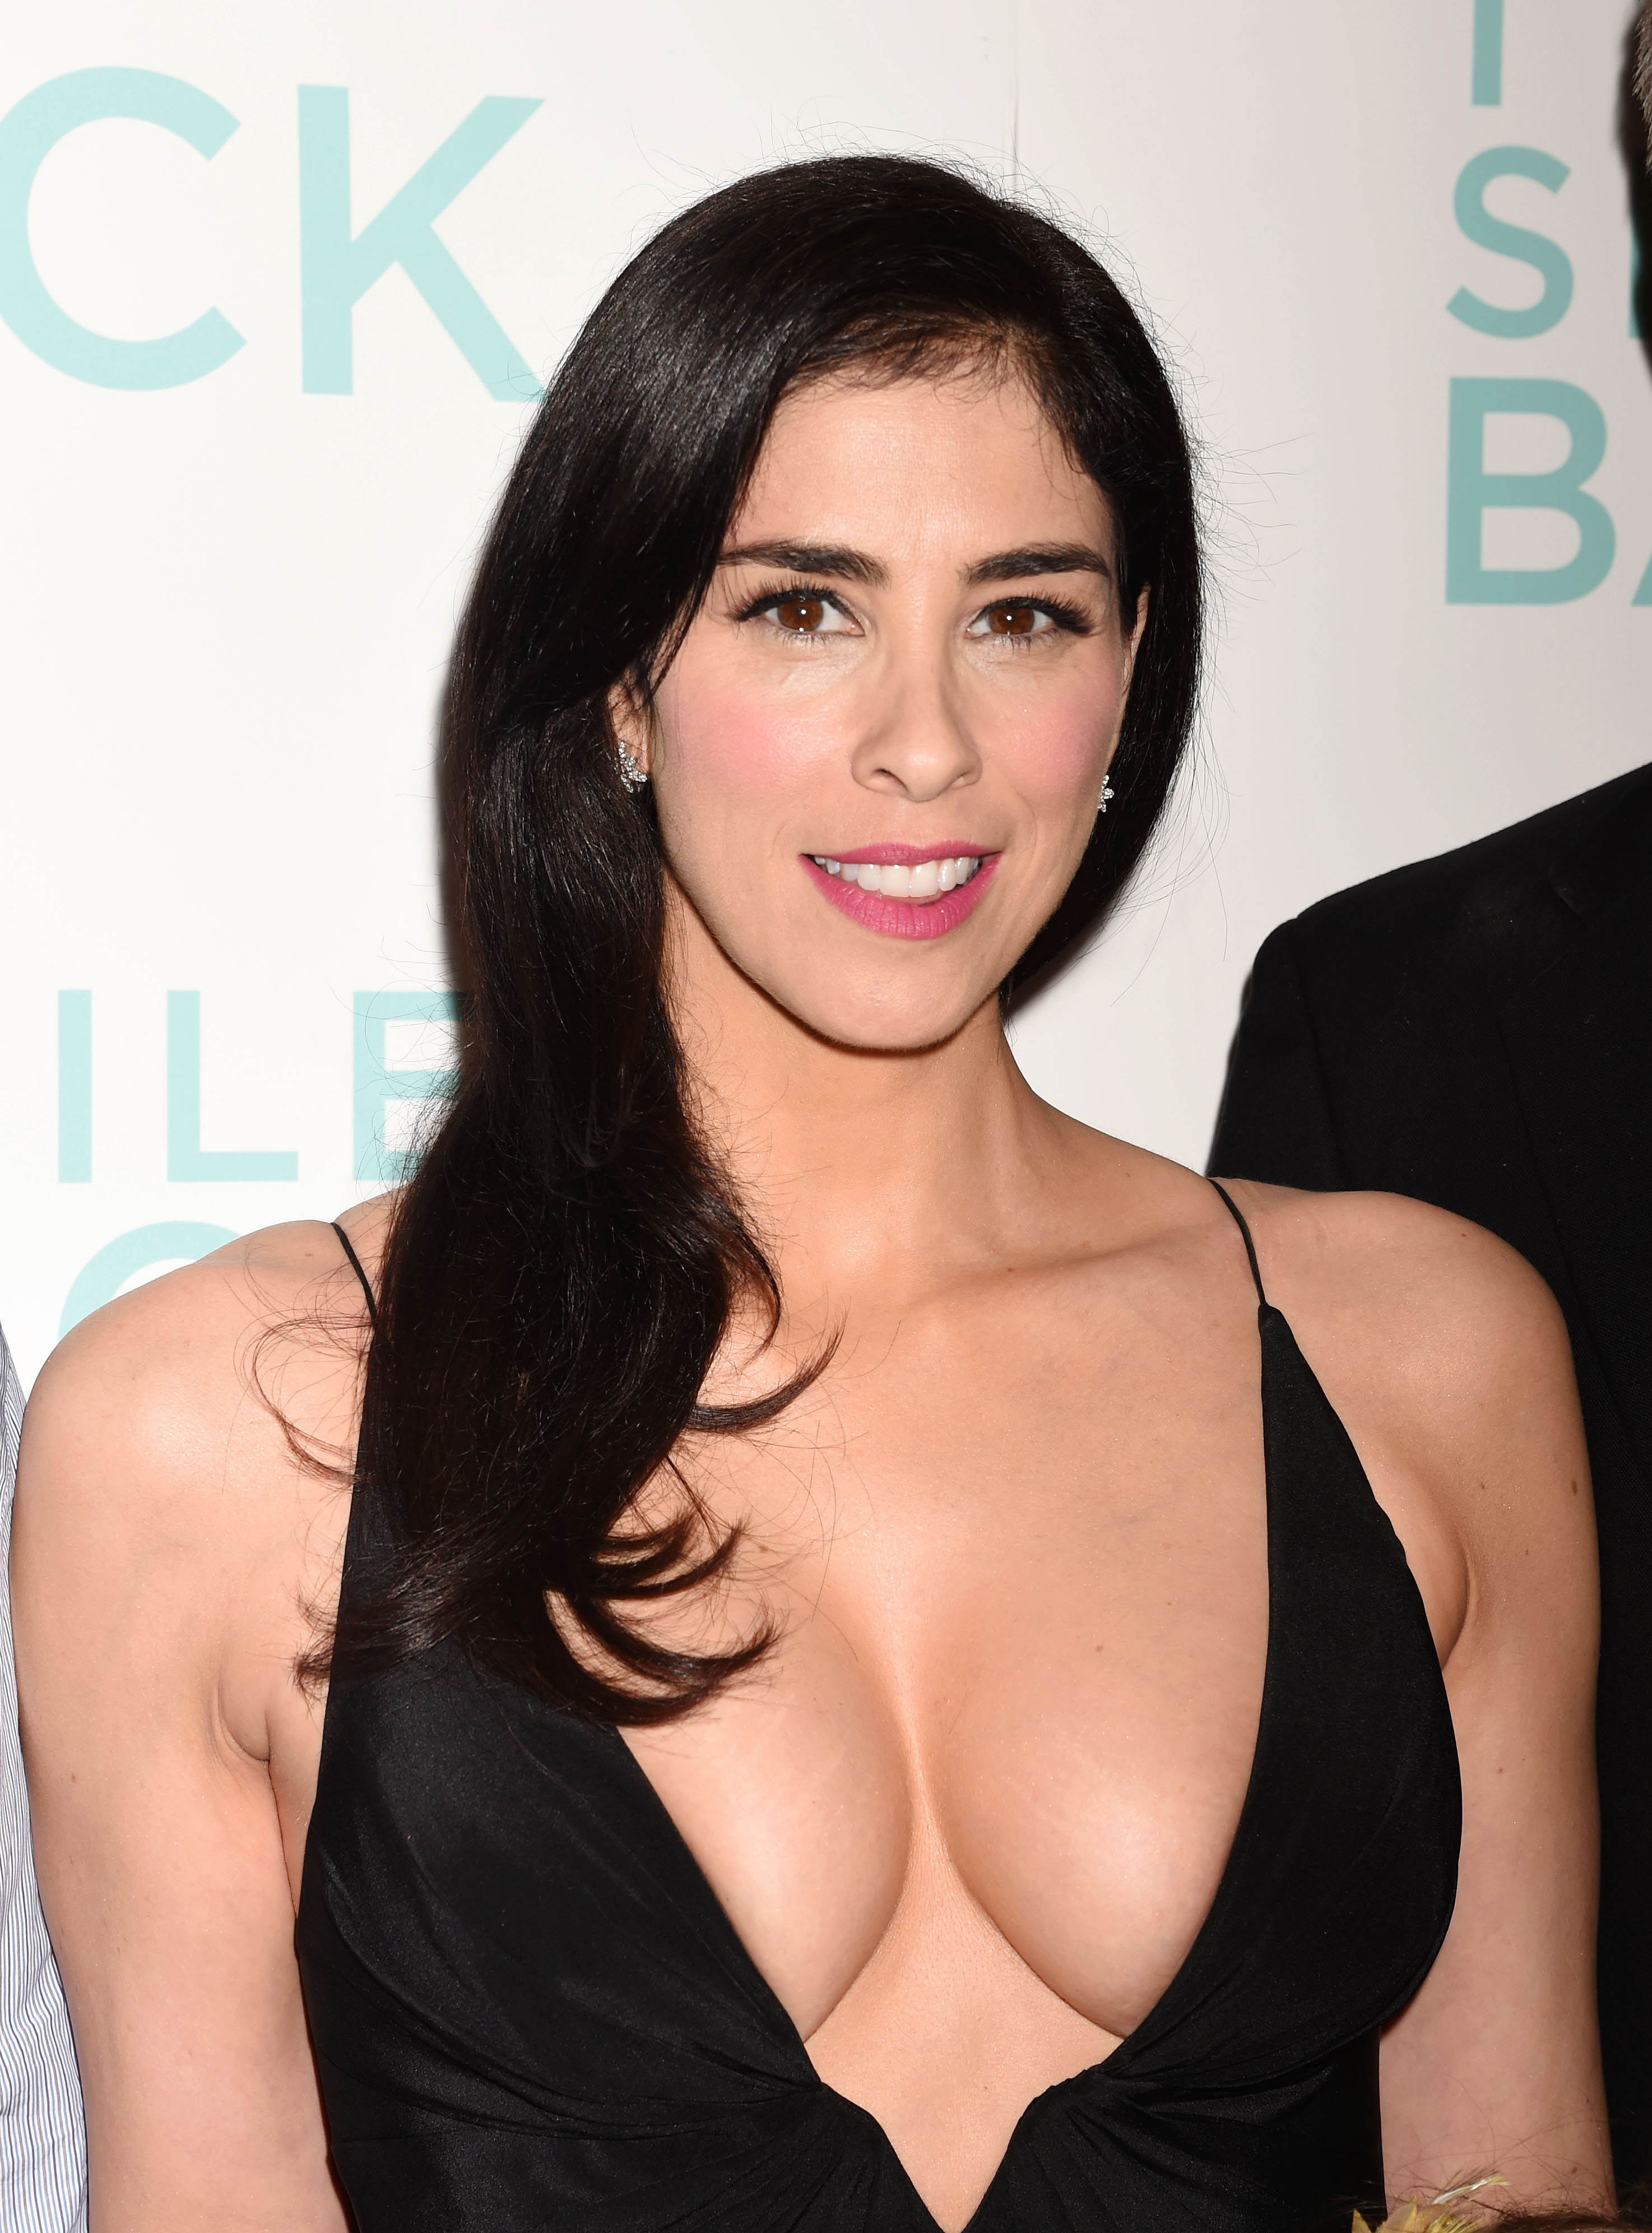 Sarah Silverman Hot Pictures, Sexy Images & Videos